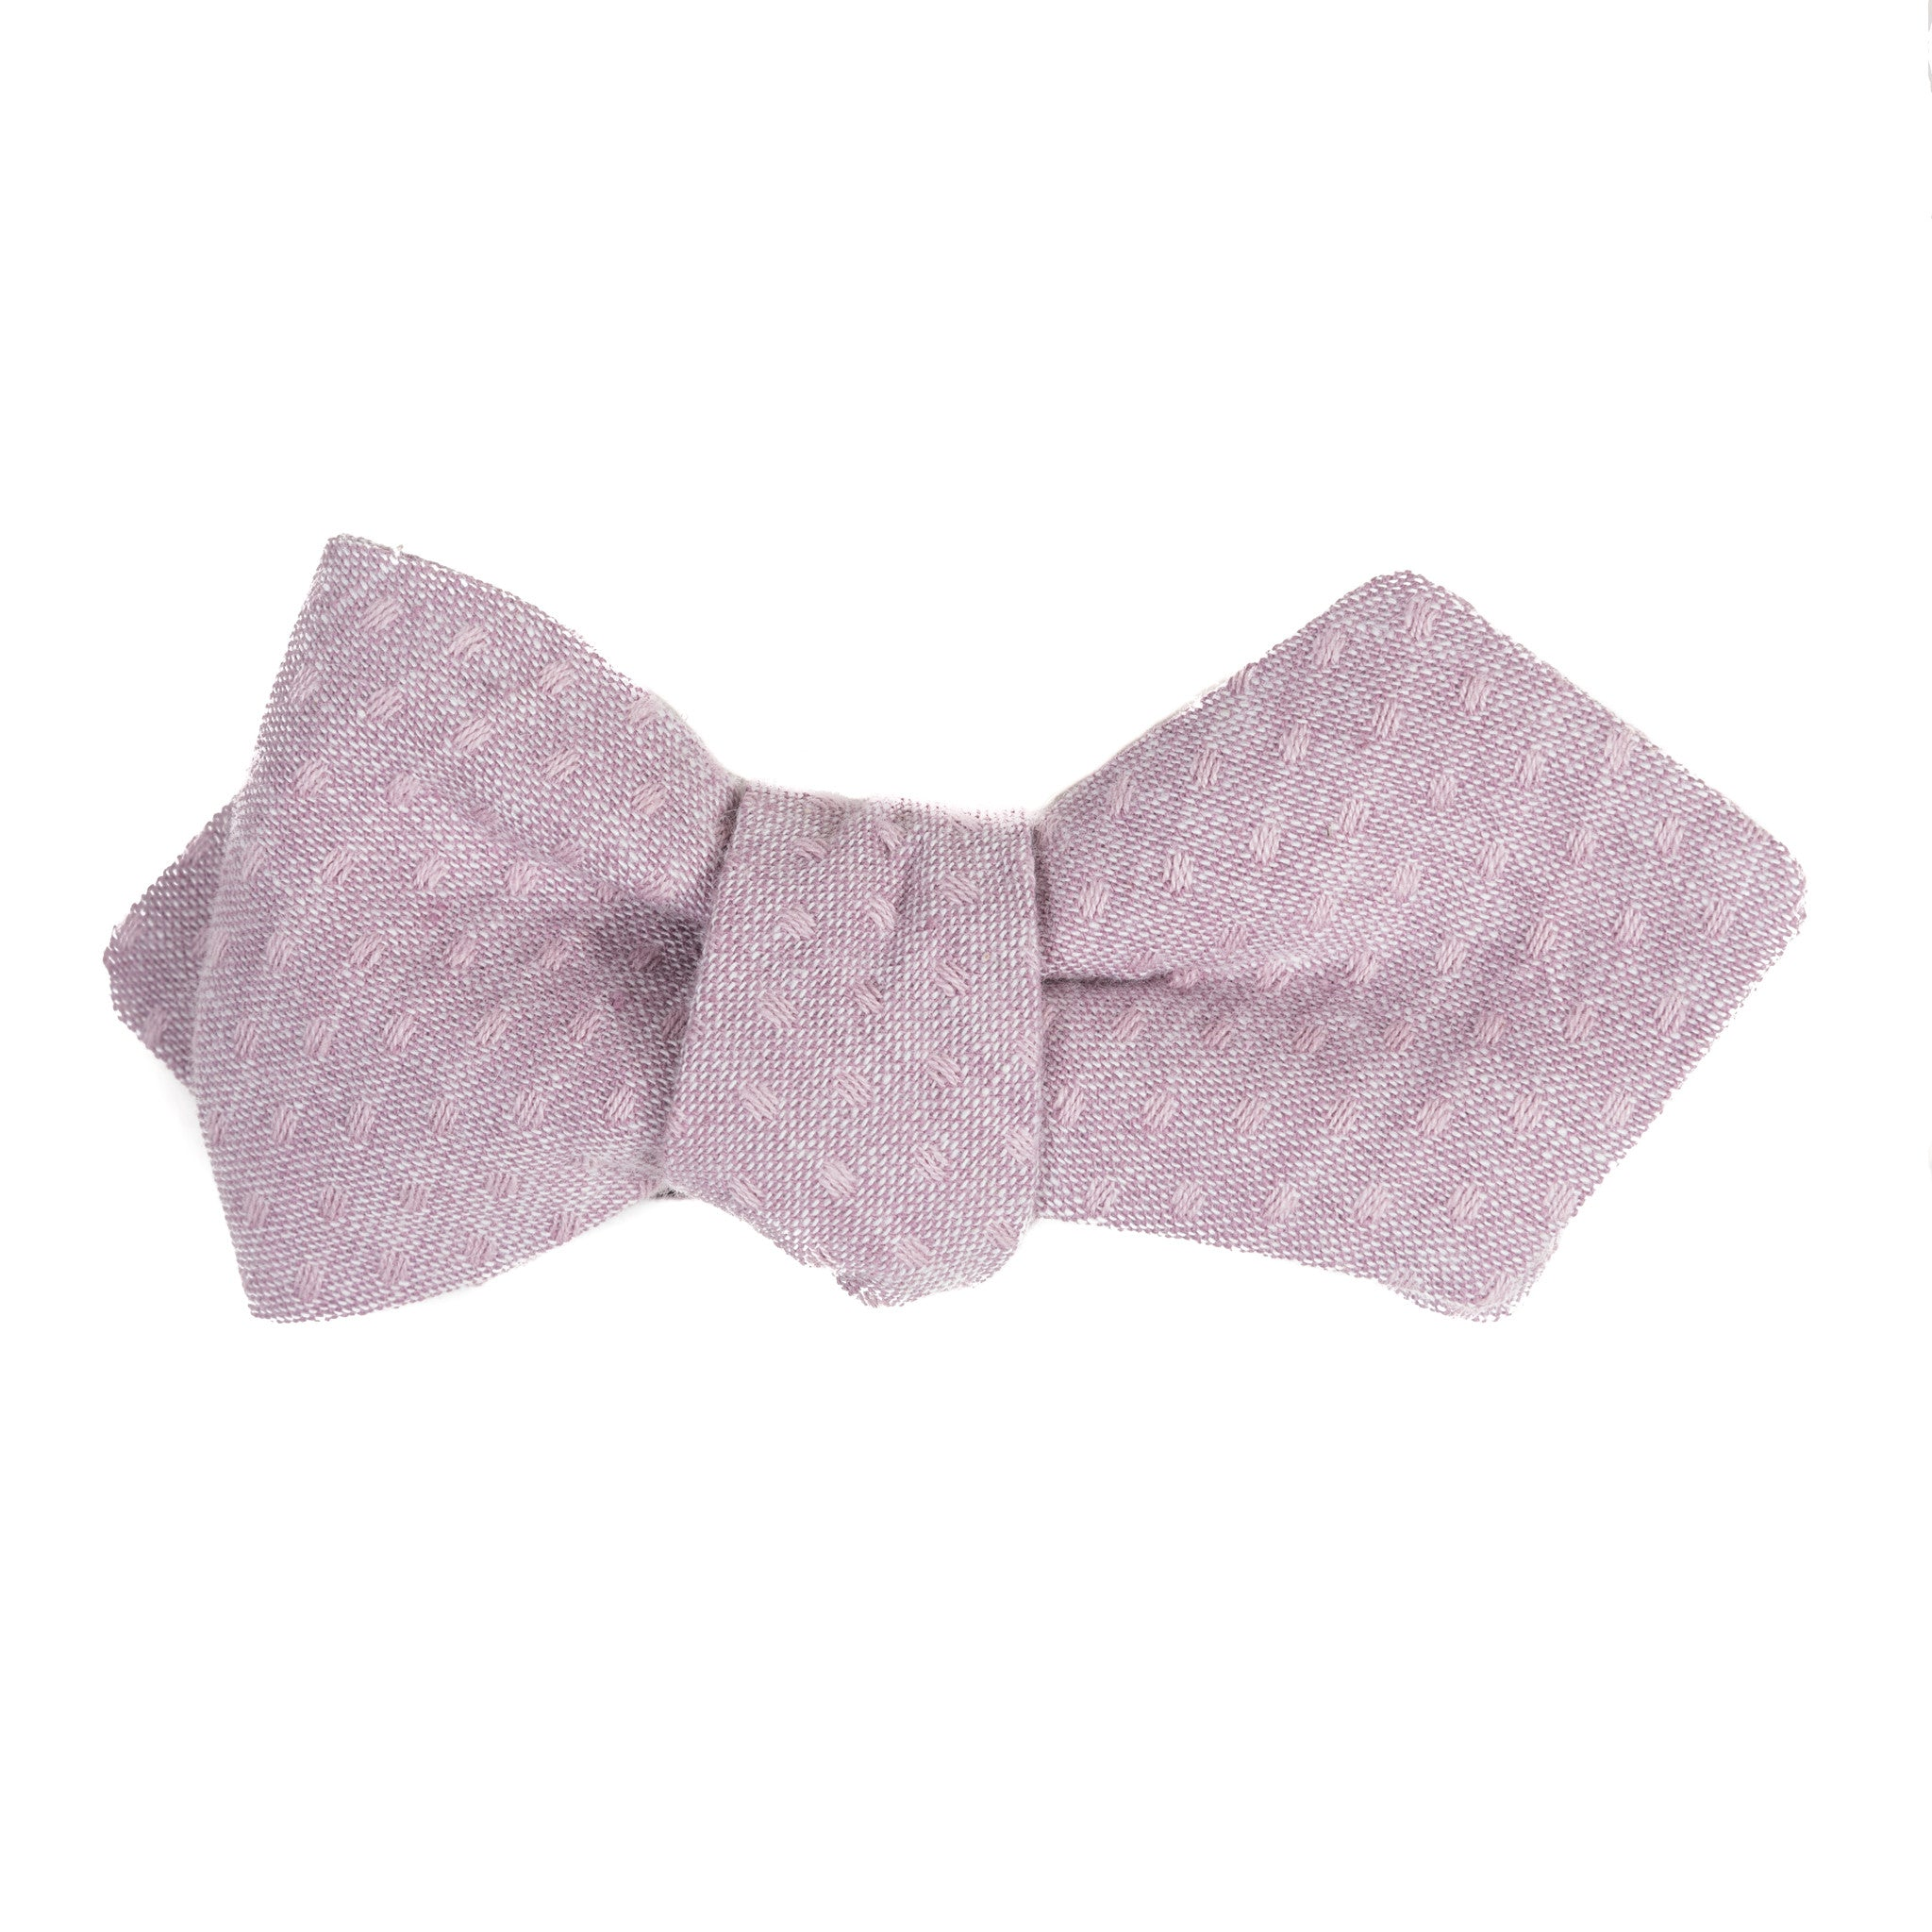 mauve purple cotton bow tie with subtle color matching dots